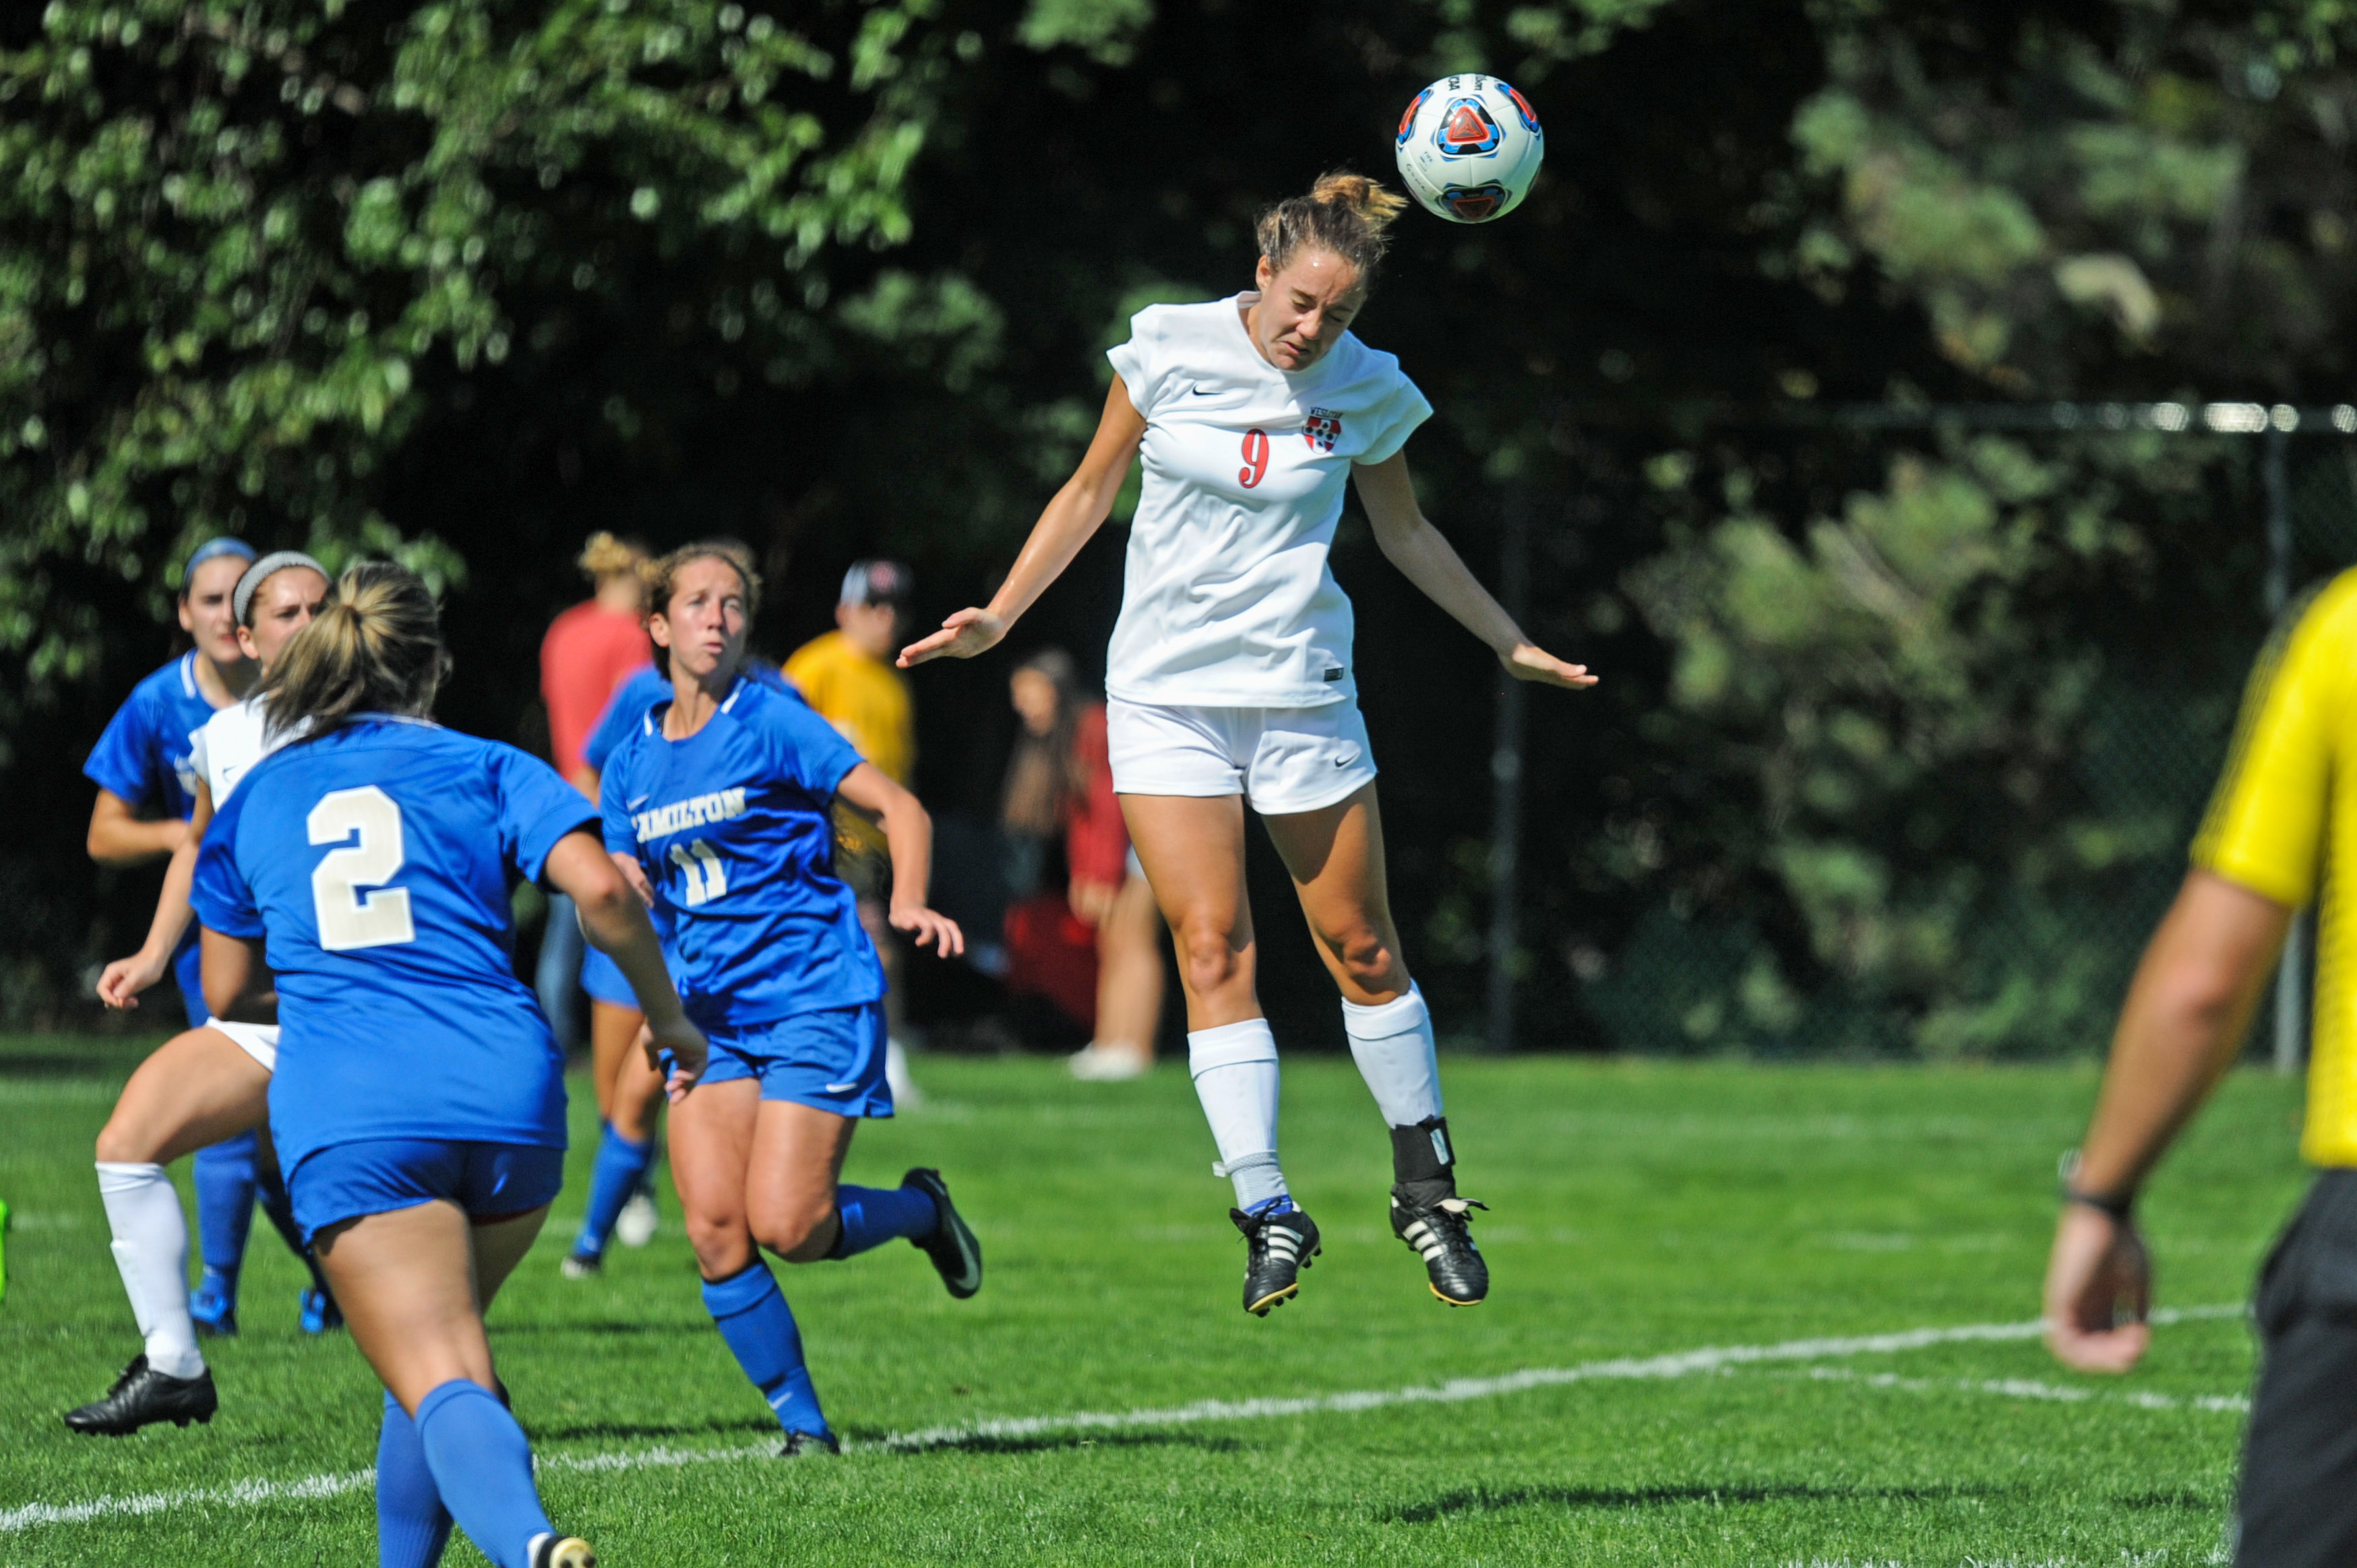 Women's soccer tied 1-1 against Hamilton during the Family Weekend contest.